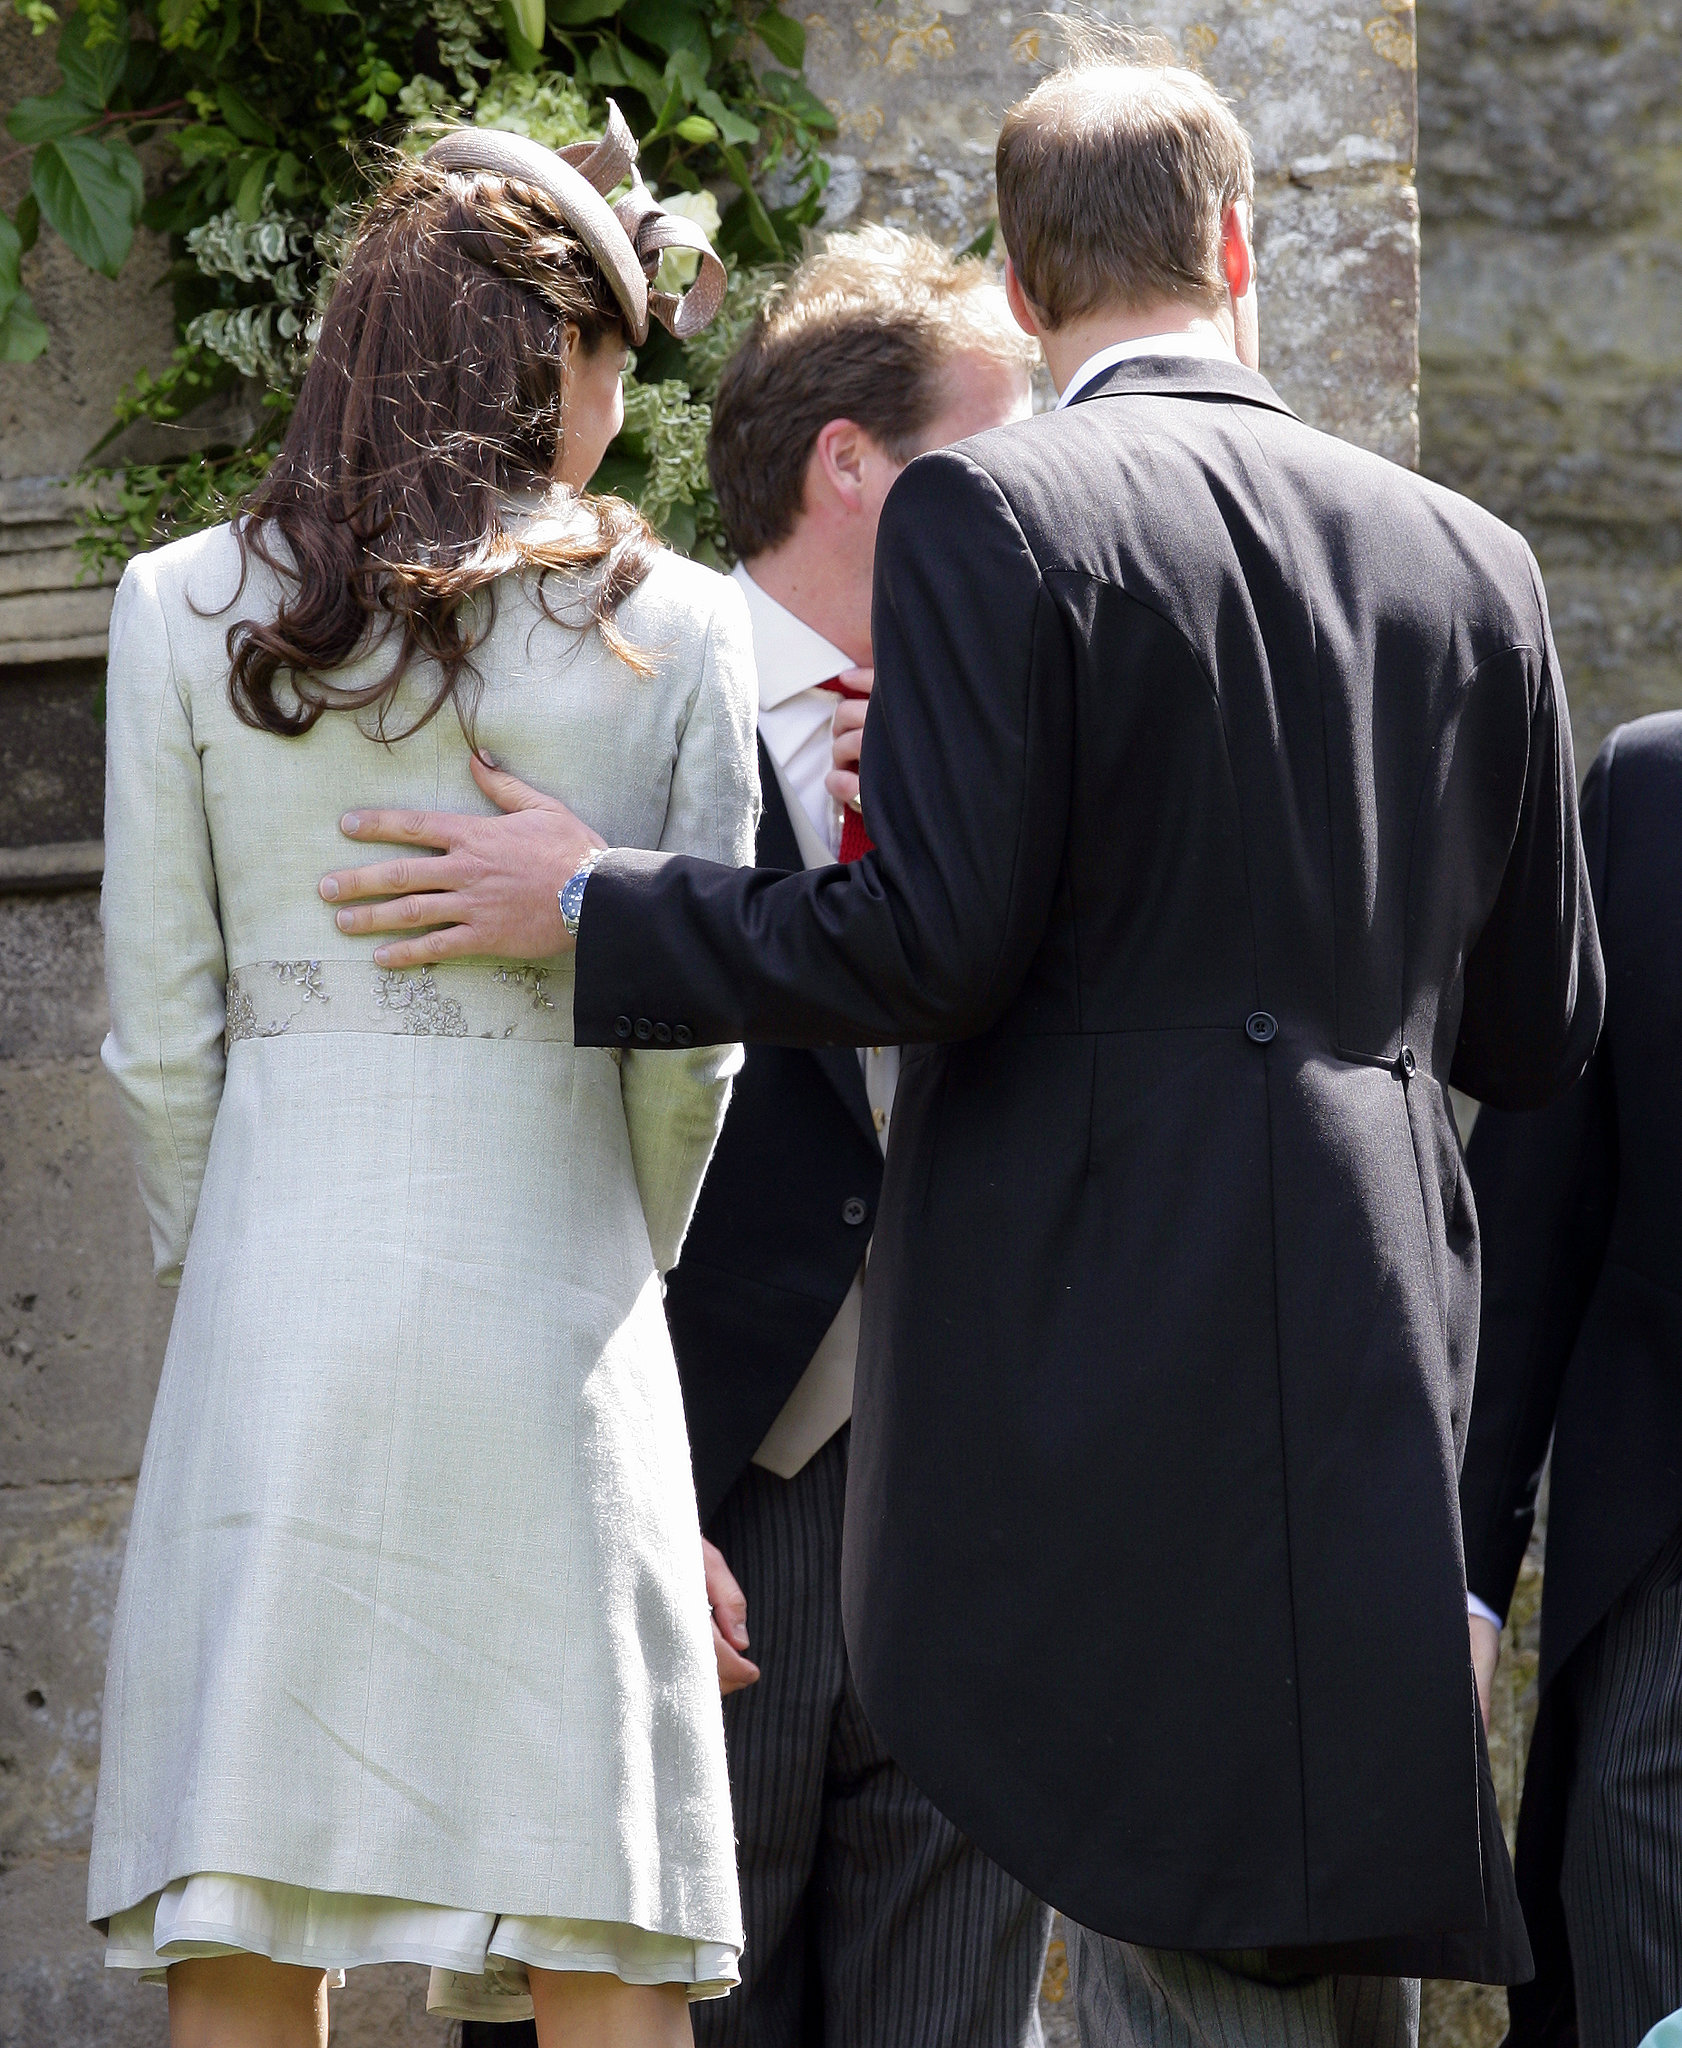 William rested his hand on Kate's back at a wedding in June of 2012.